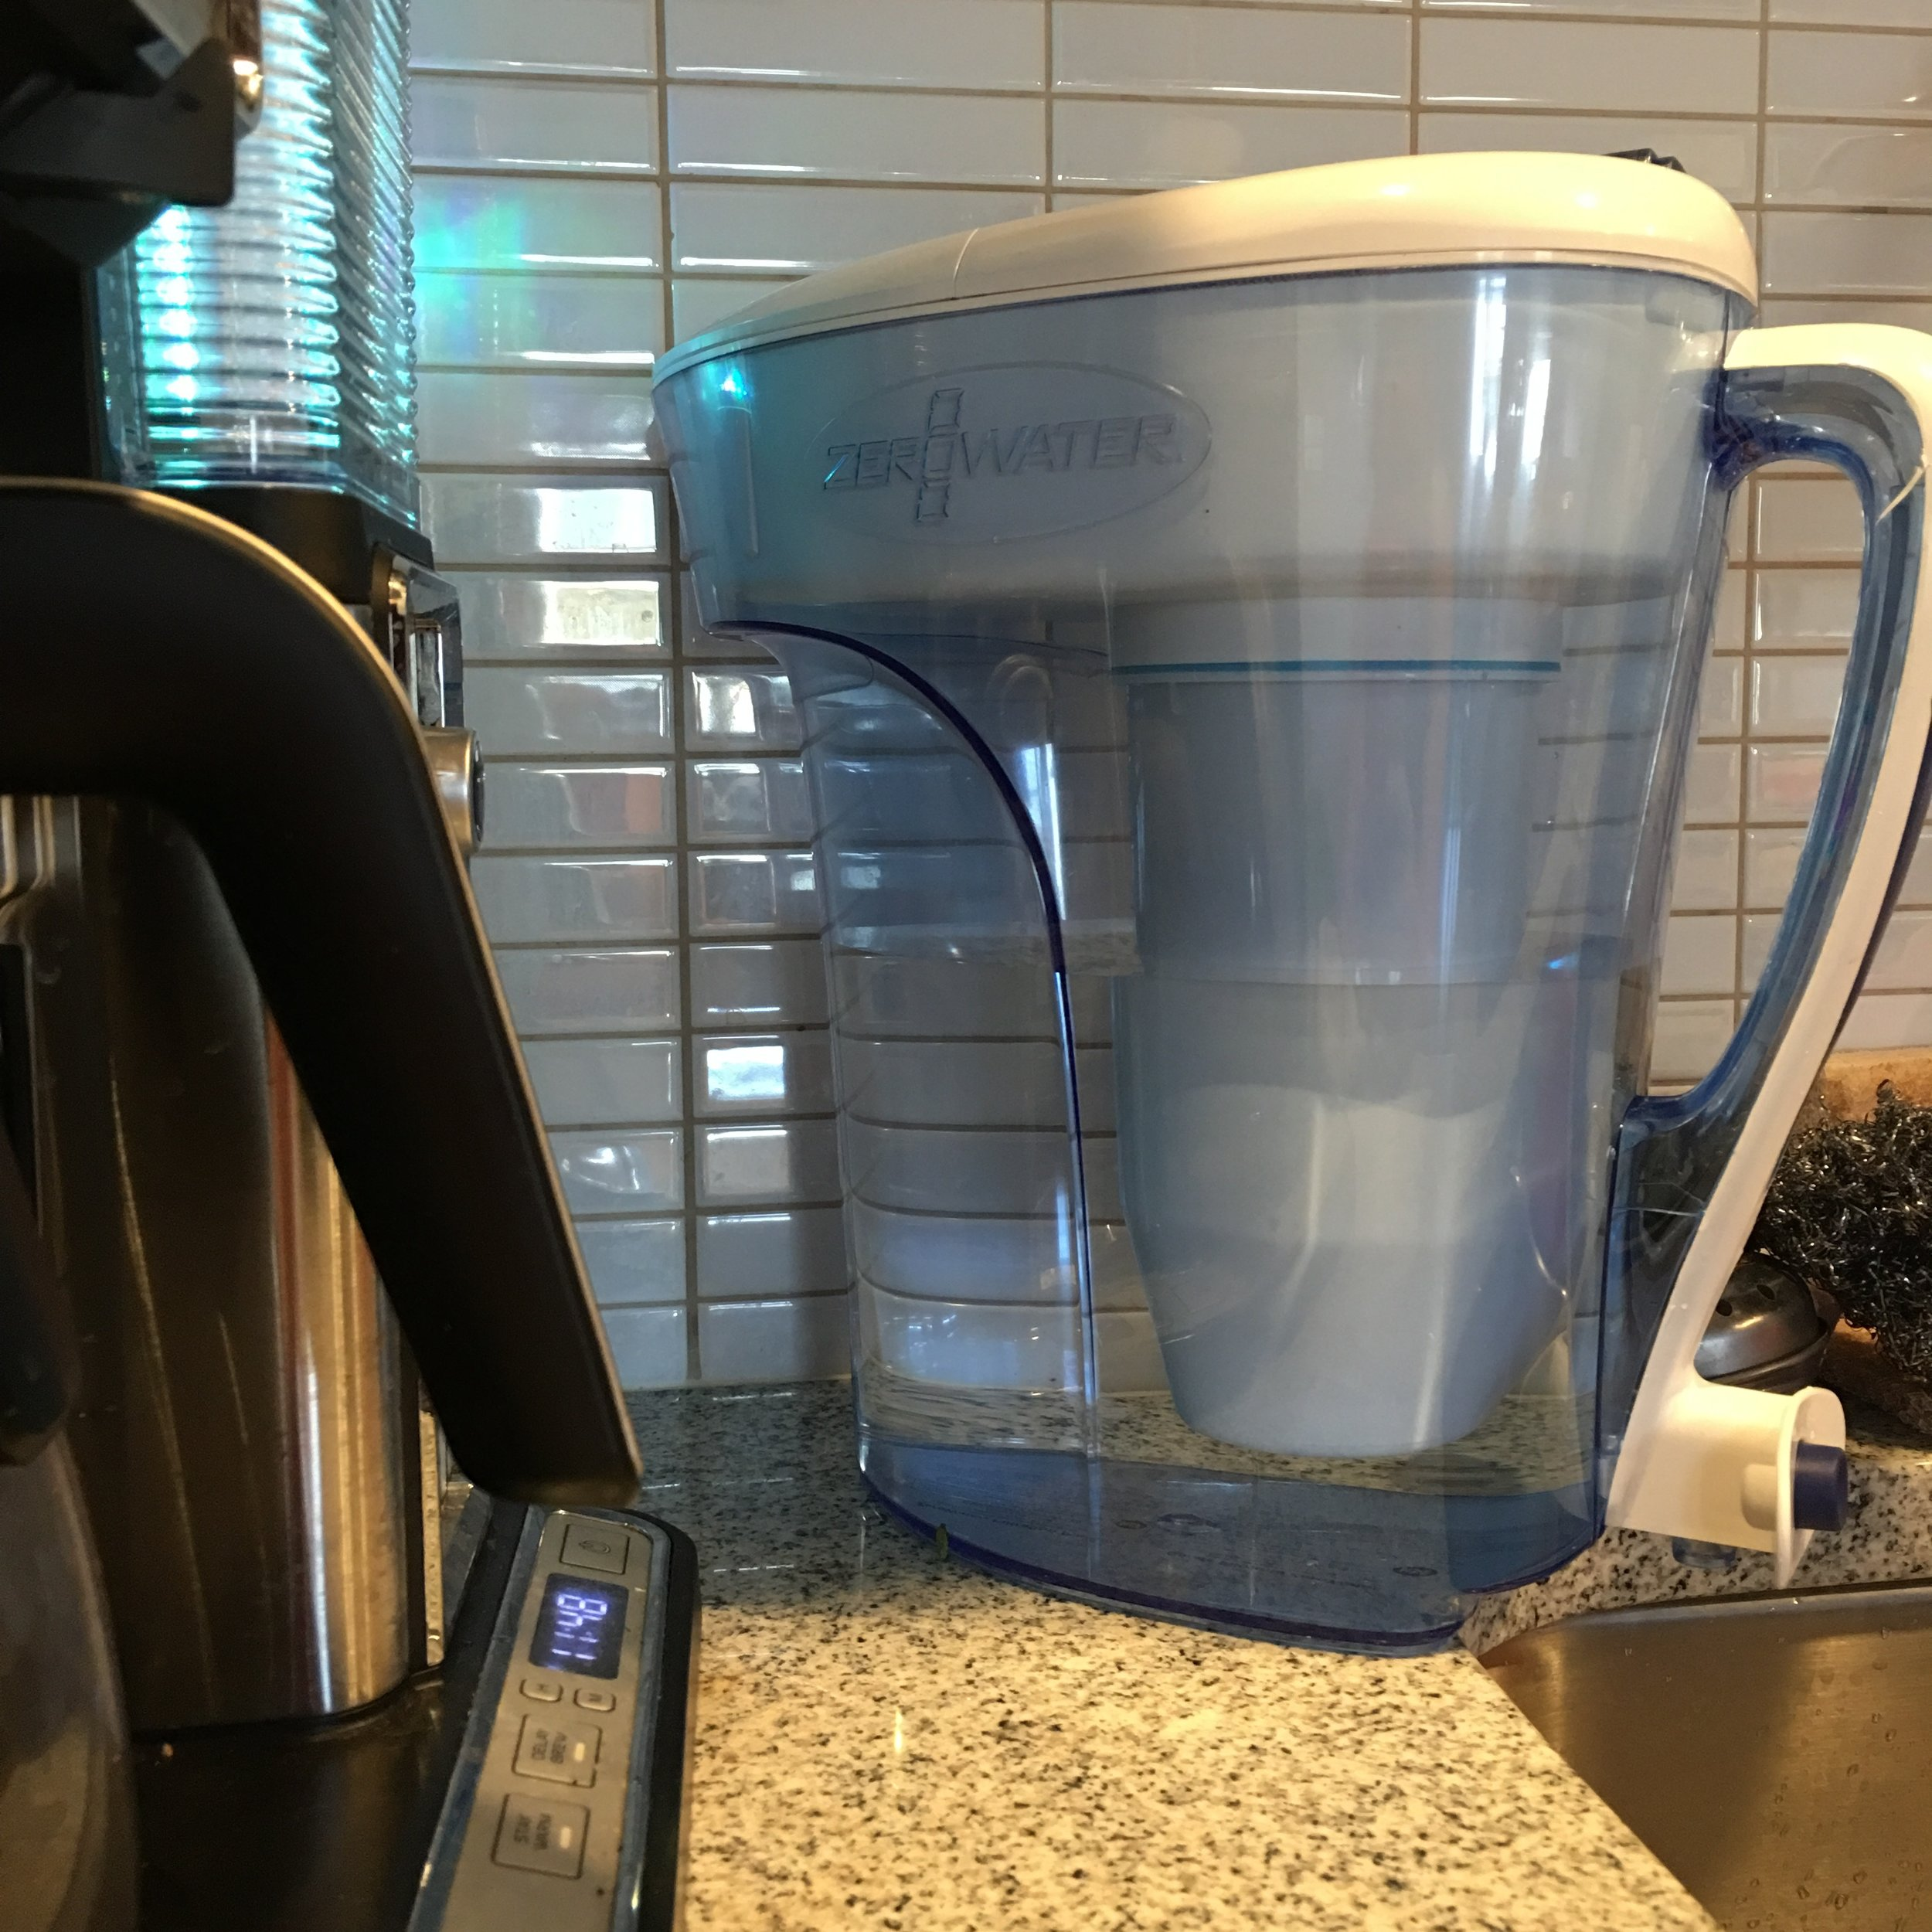 Hydration! - There's a spigot at the bottom of the handle on this pitcher!